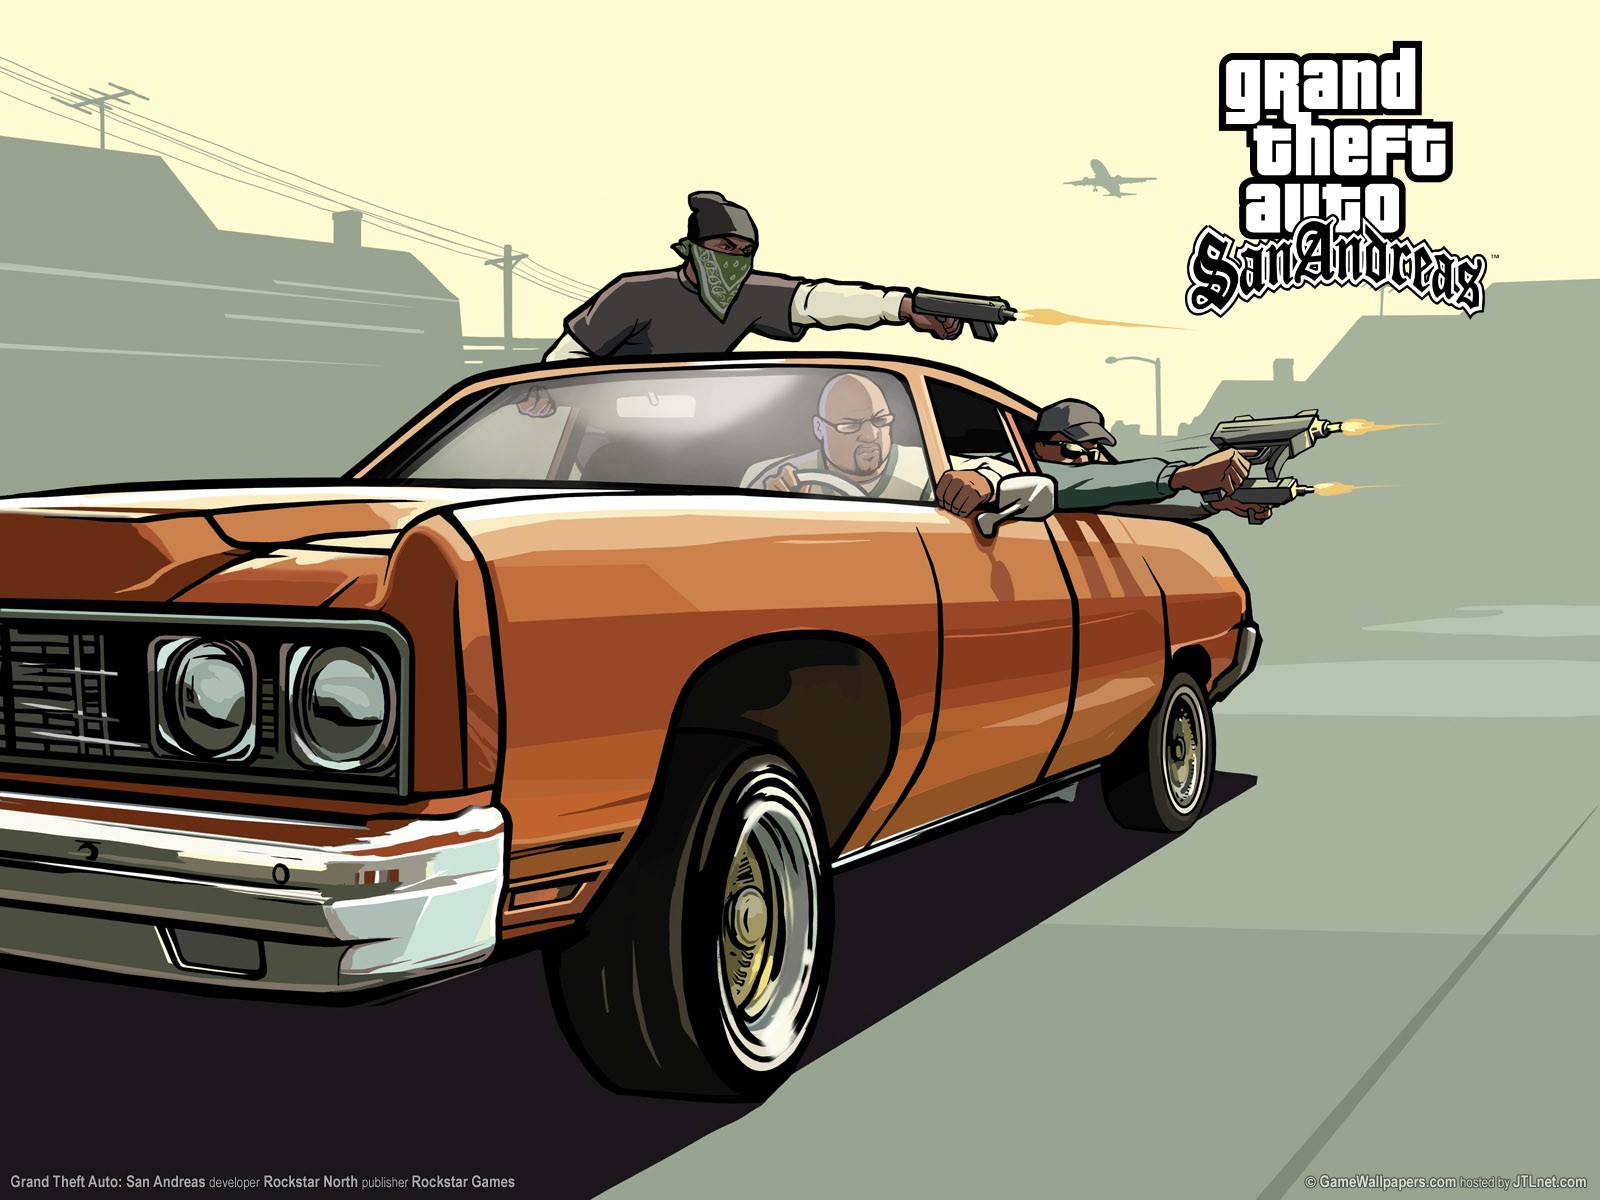 San Andreas Wallpaper HD